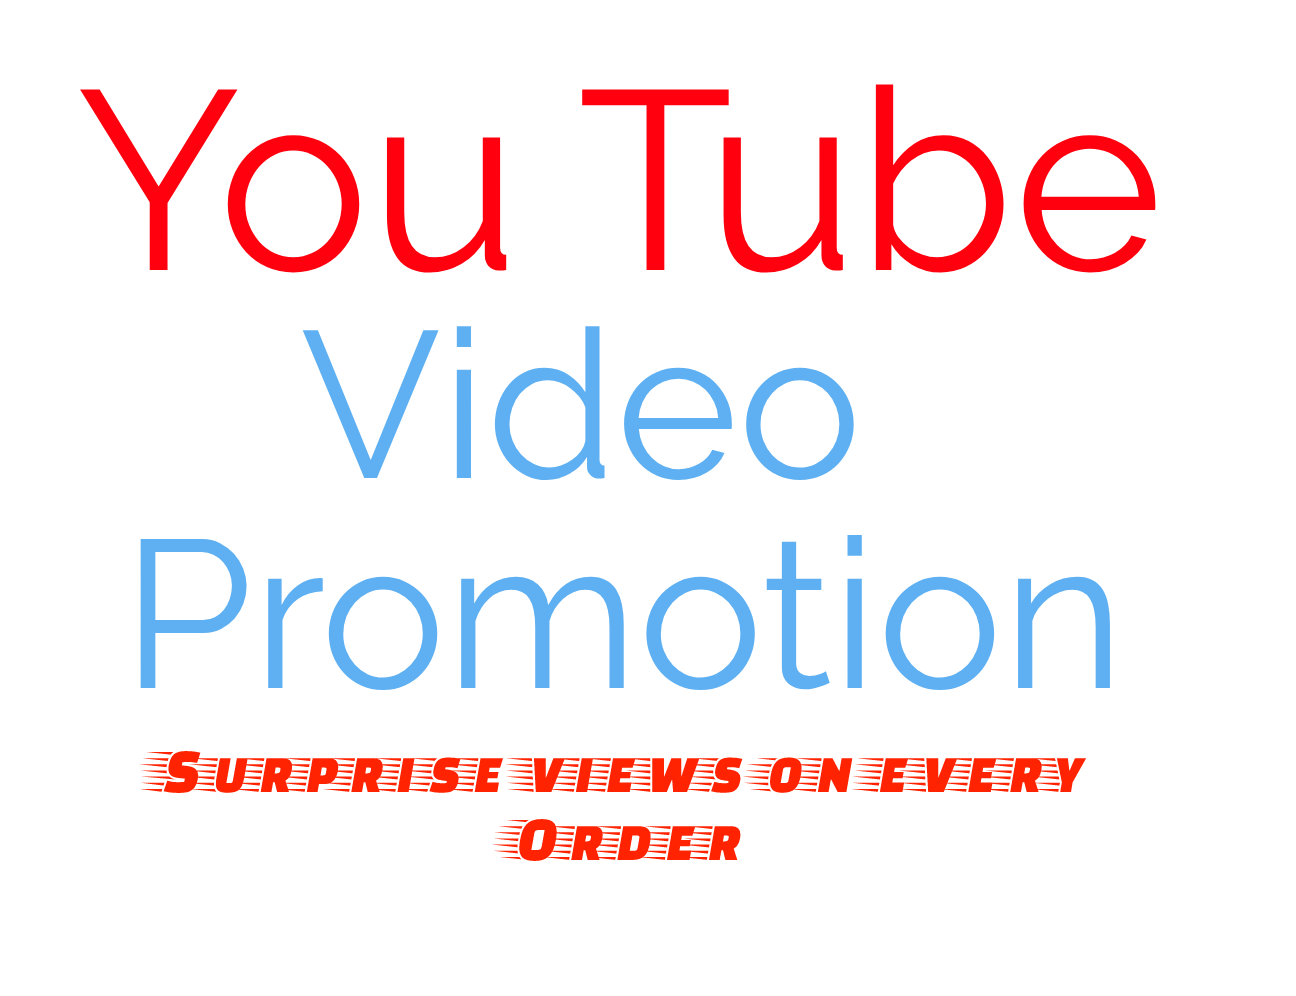 YouTube VIDEO PRMOTION INSTANTLY